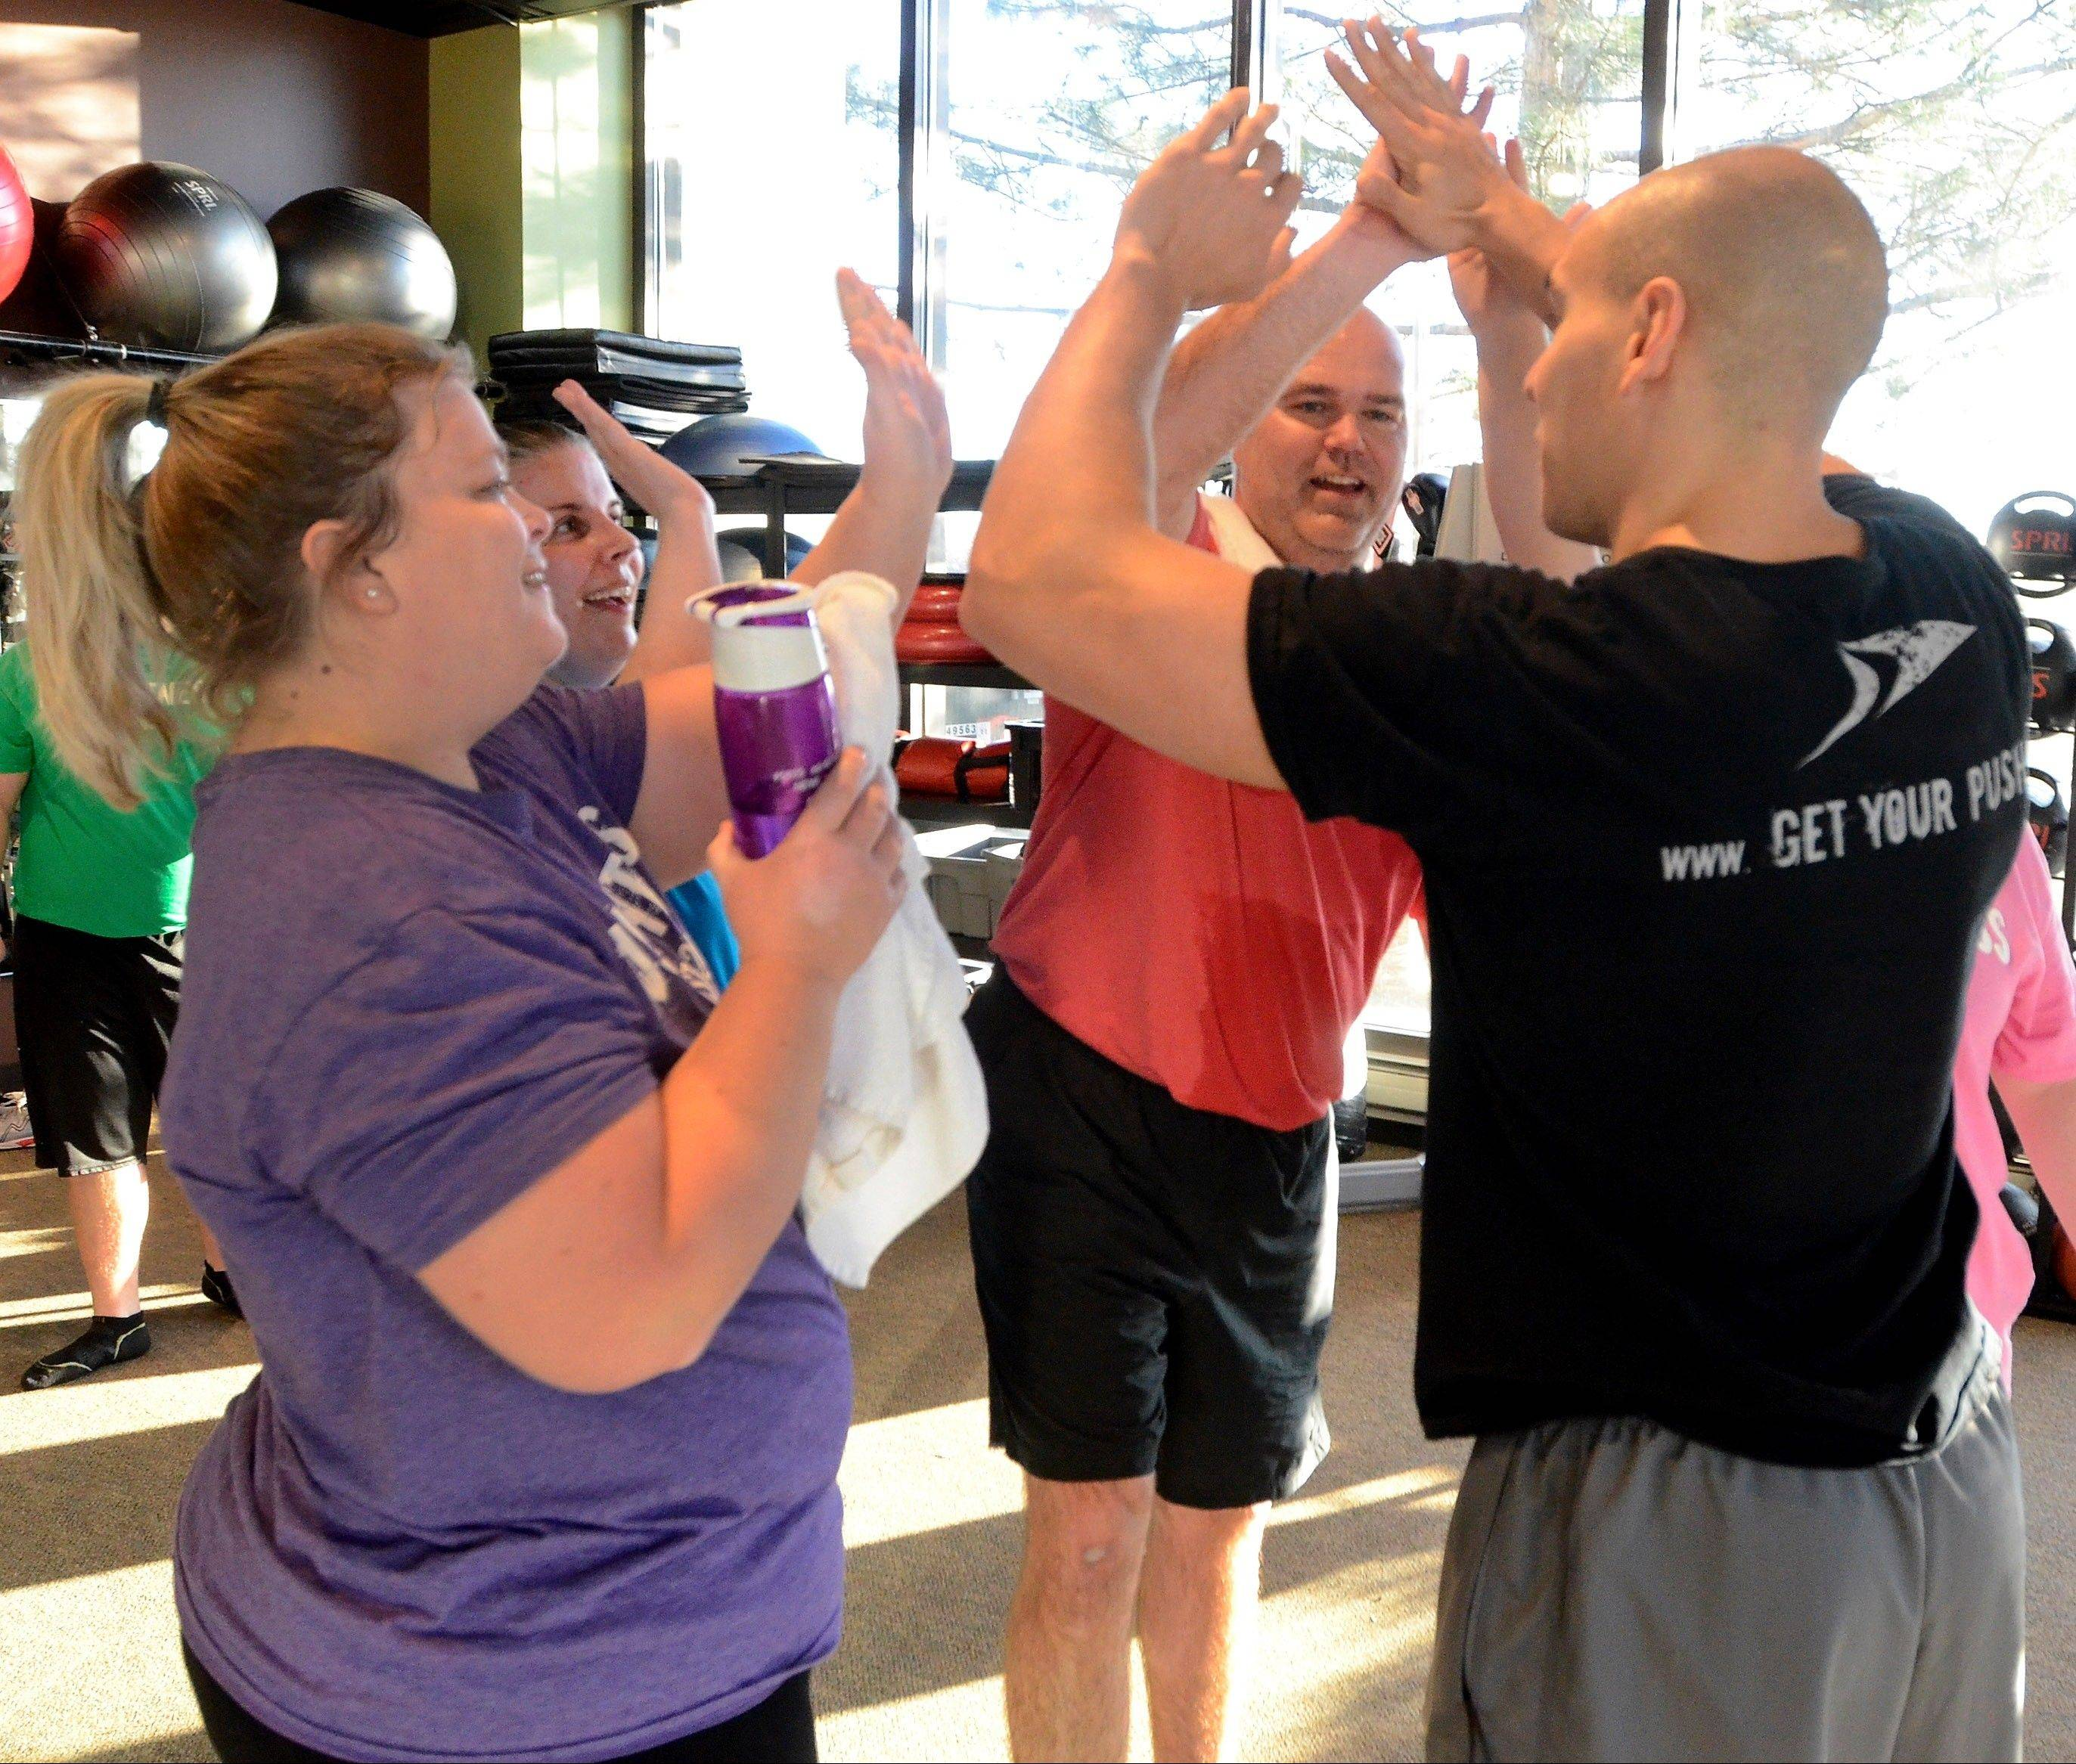 It's high-fives all around with trainer Tony Rinhart at the end of the 45-minute boot-camp workout.